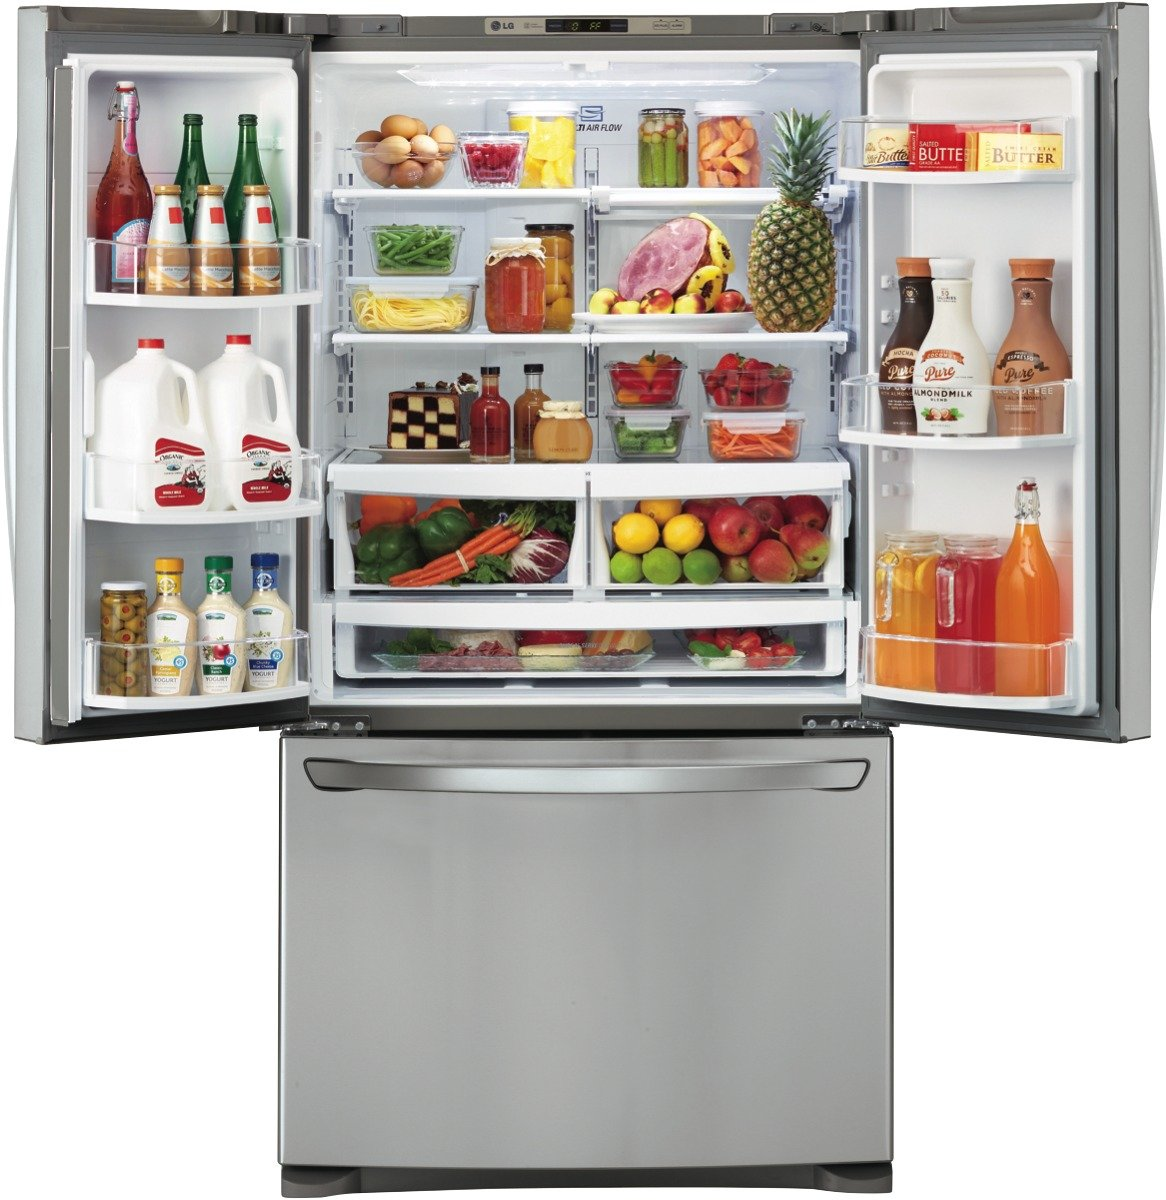 unusual refrigerator lg double door. LG GF B620SL 620L French Door Fridge Fridges  an Appliances Online Buying Guide